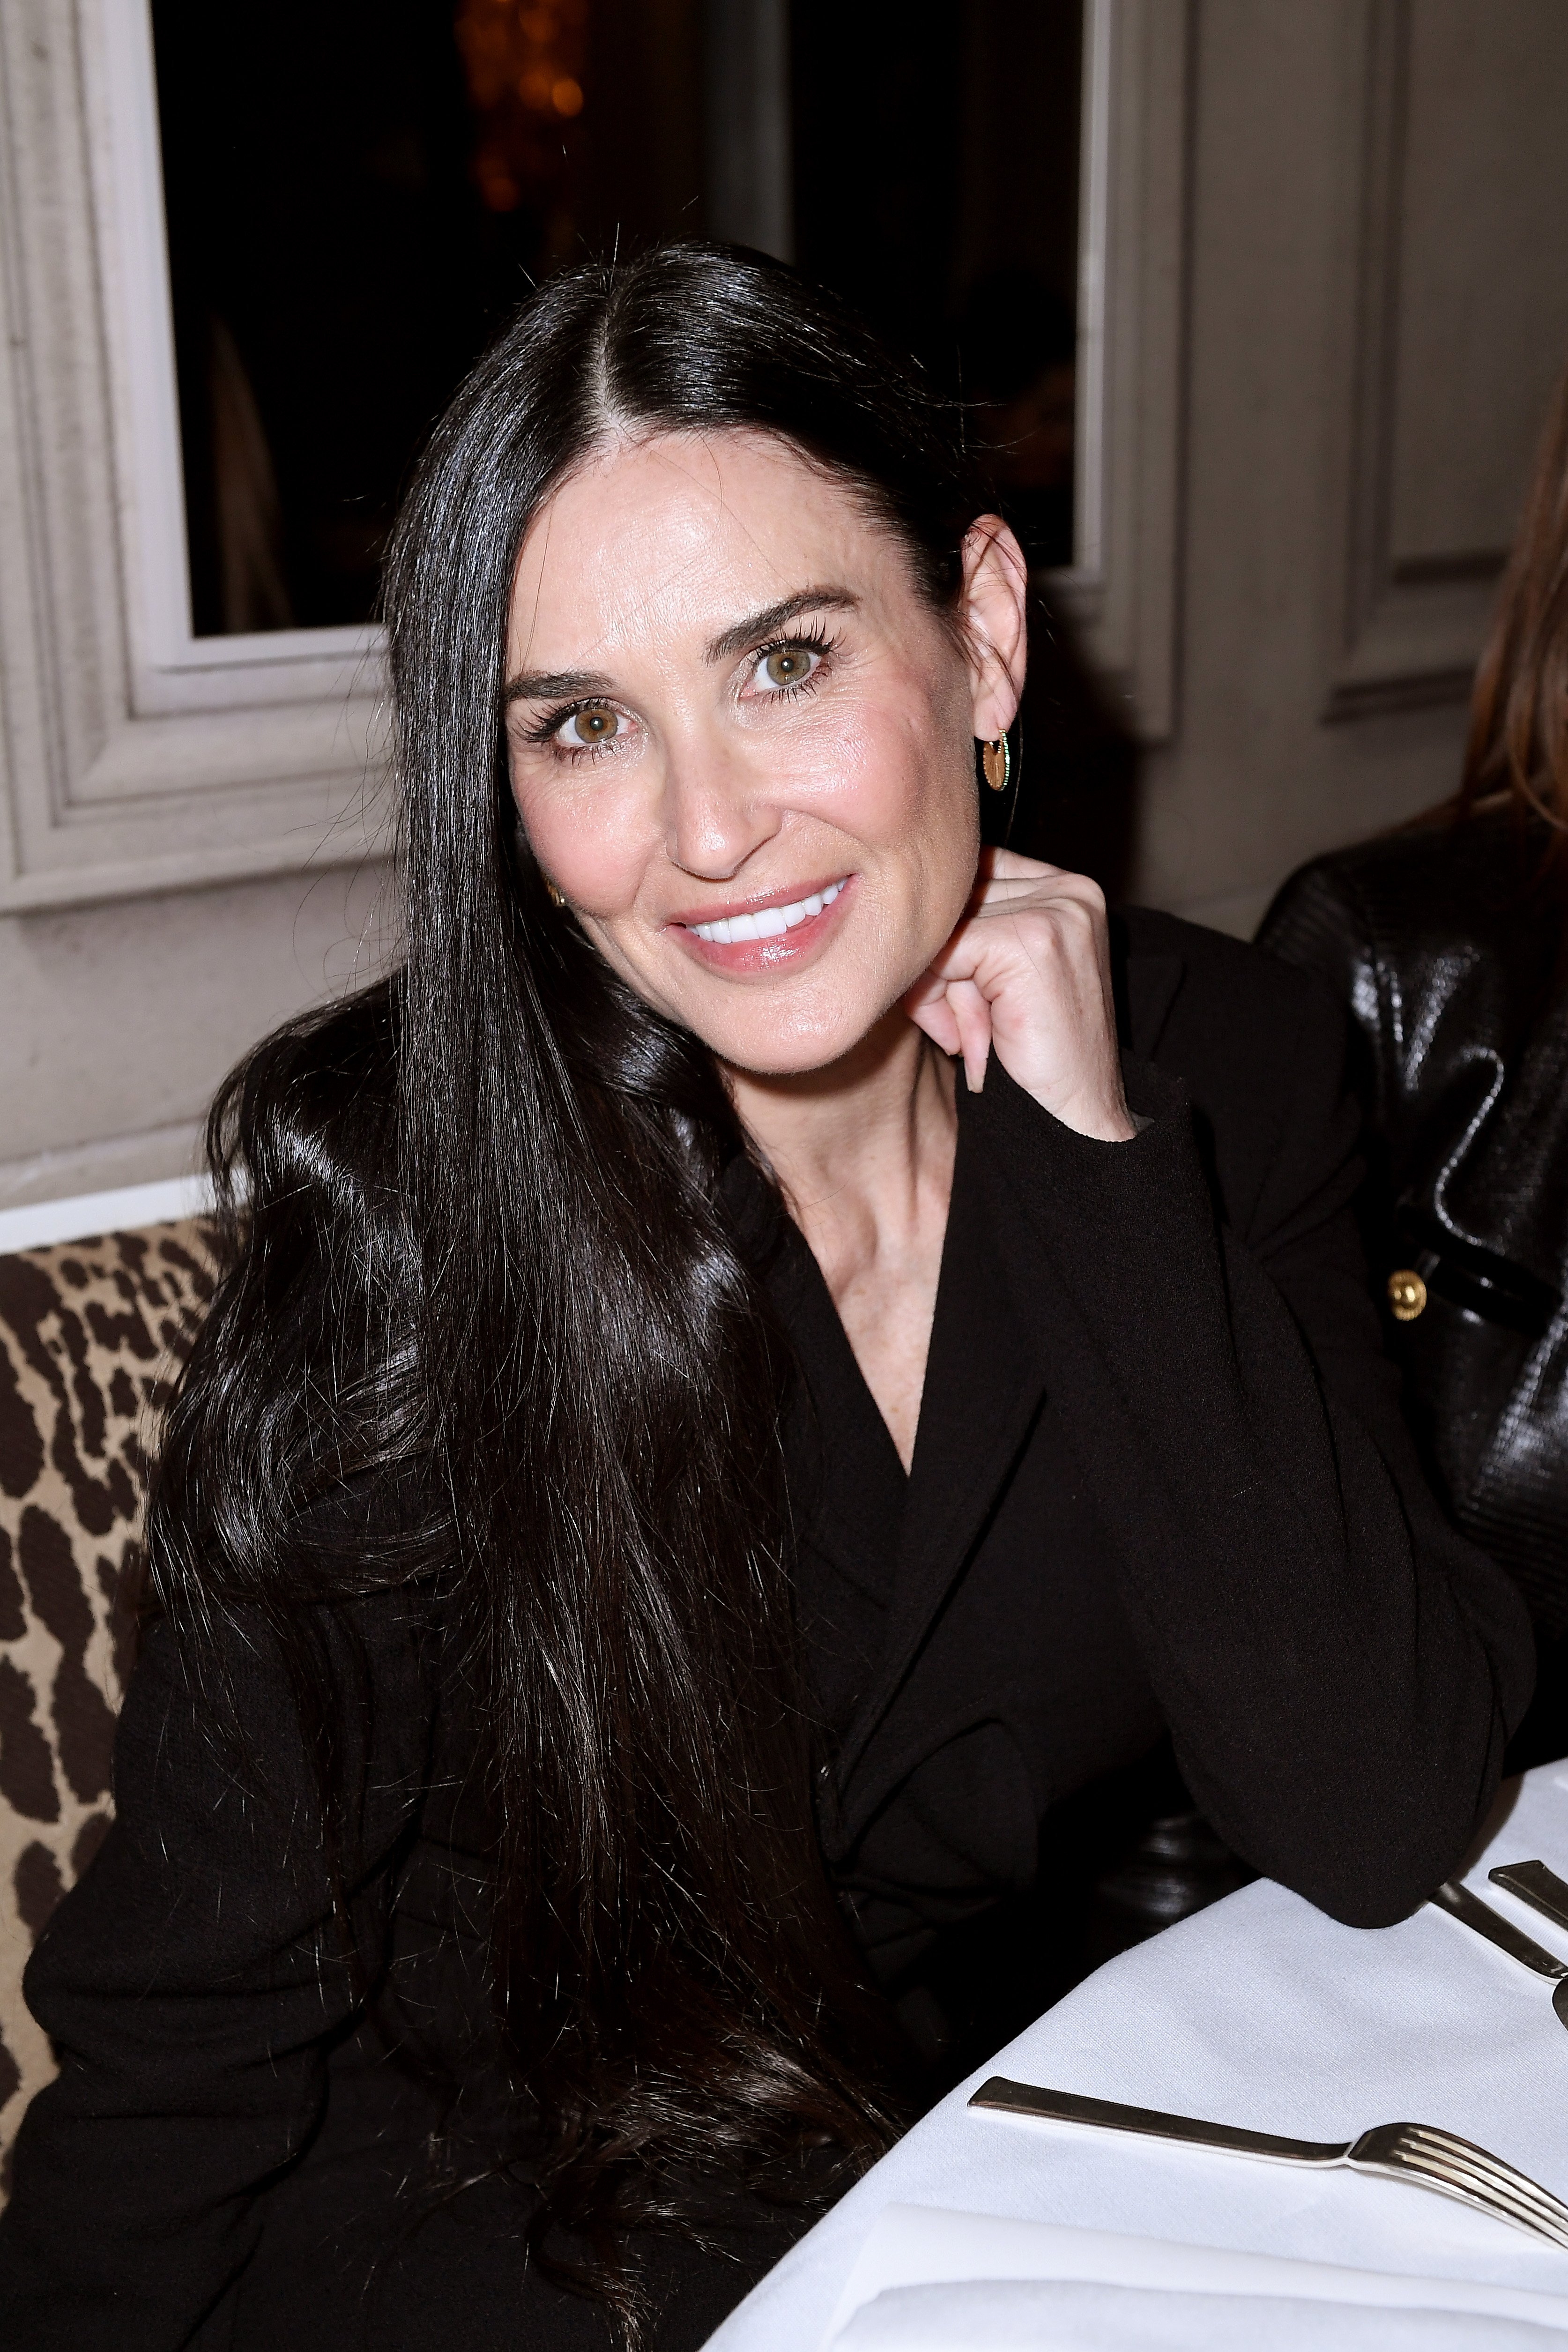 Demi Moore attends the Monot show as part of the Paris Fashion Week Womenswear Fall/Winter 2020/2021 on February 29, 2020 in Paris, France. | Source: Getty Images